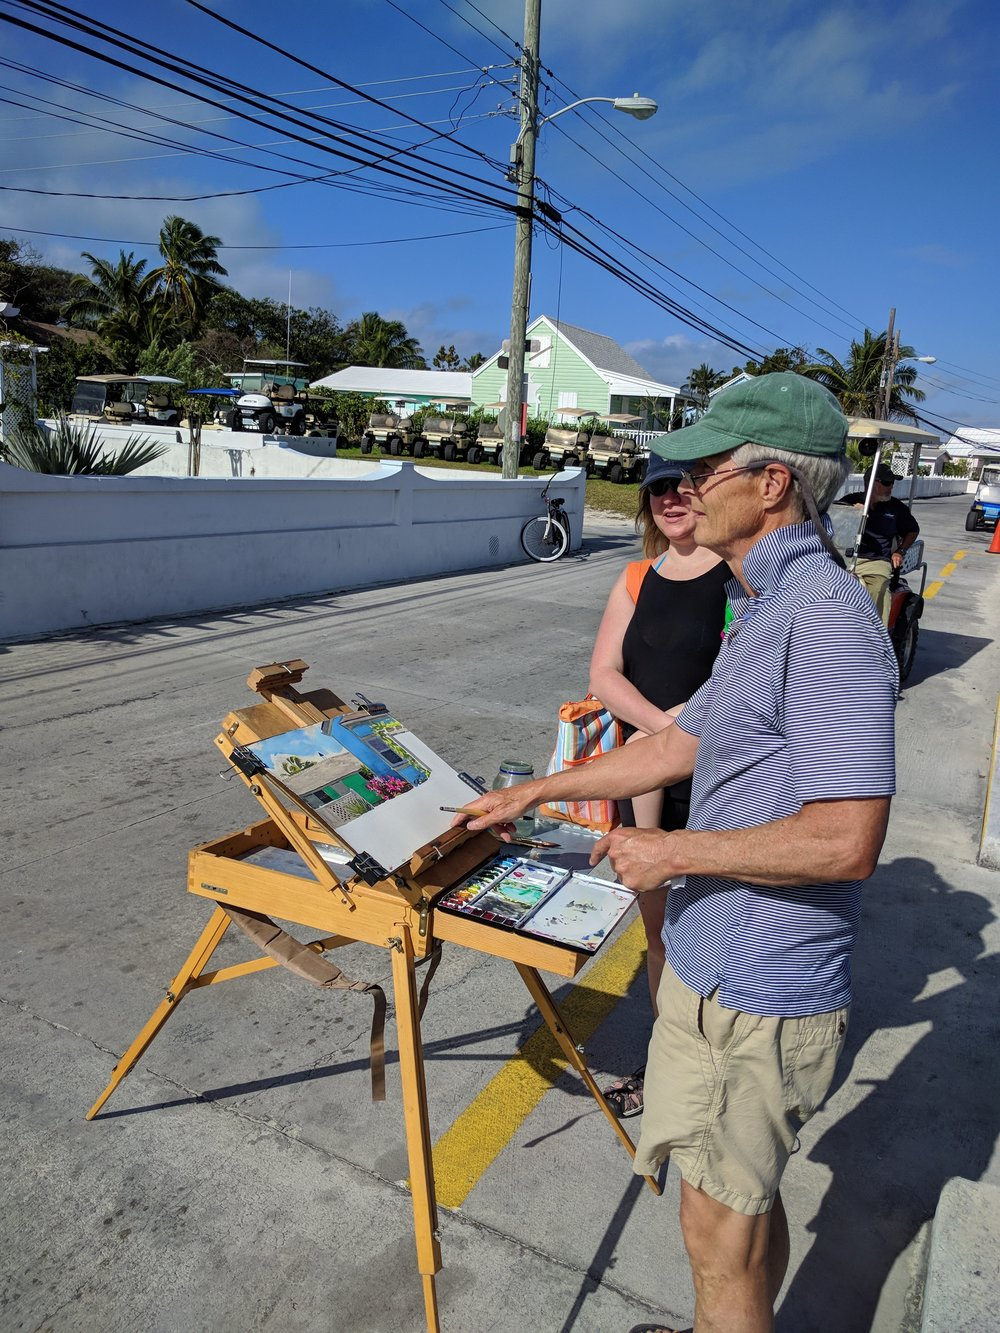 We met this very sweet water colour artist. Beautiful painting!